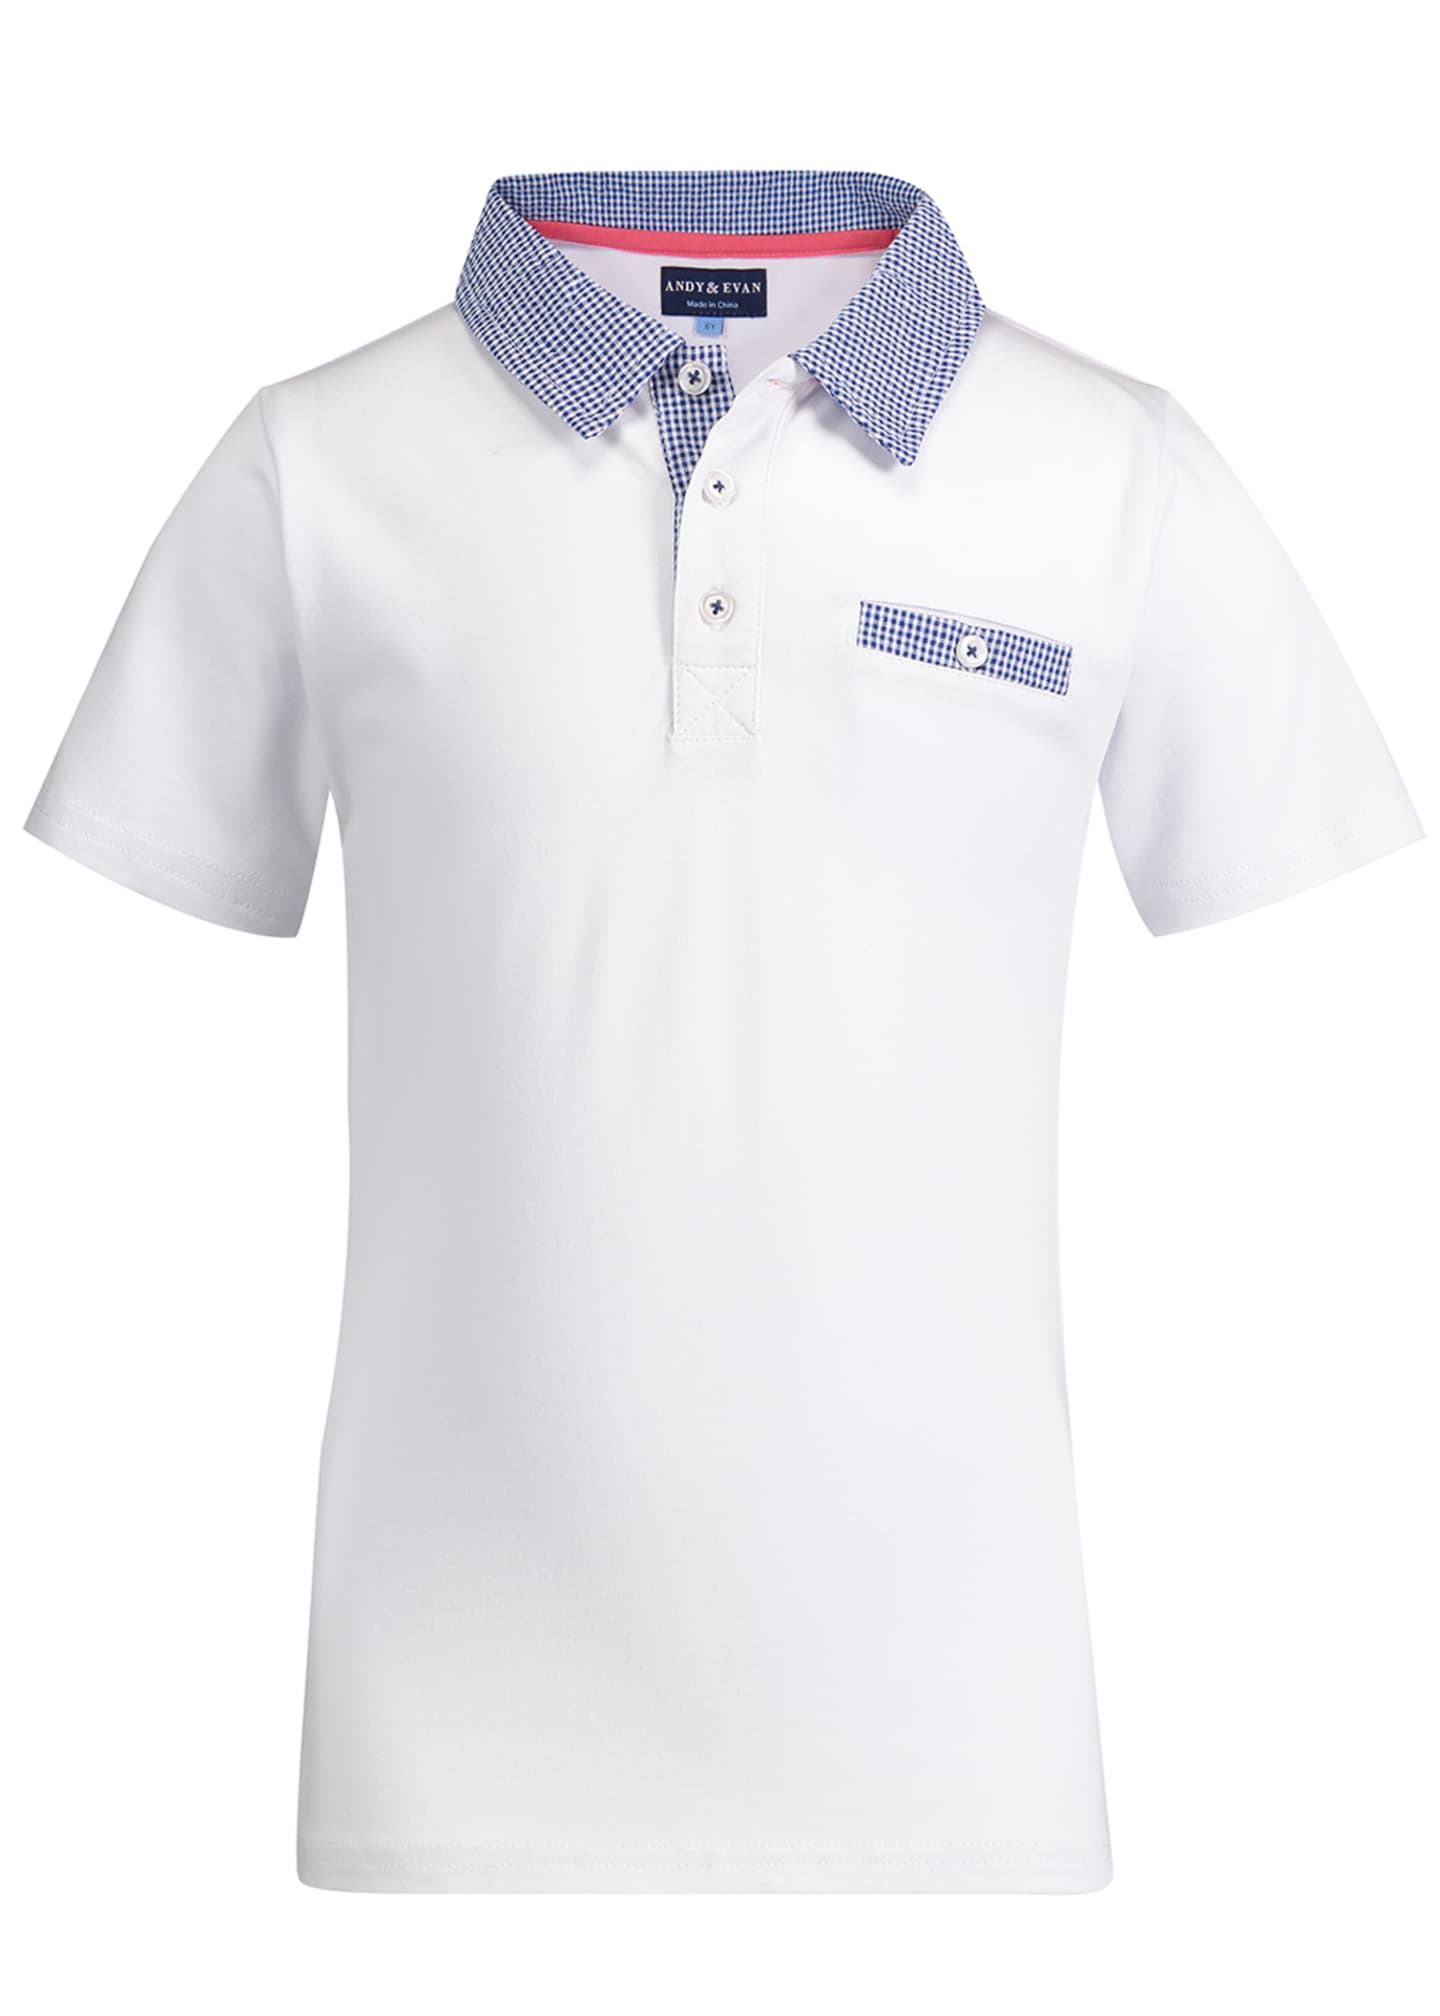 Andy & Evan Gingham Trim Polo Shirt, Size